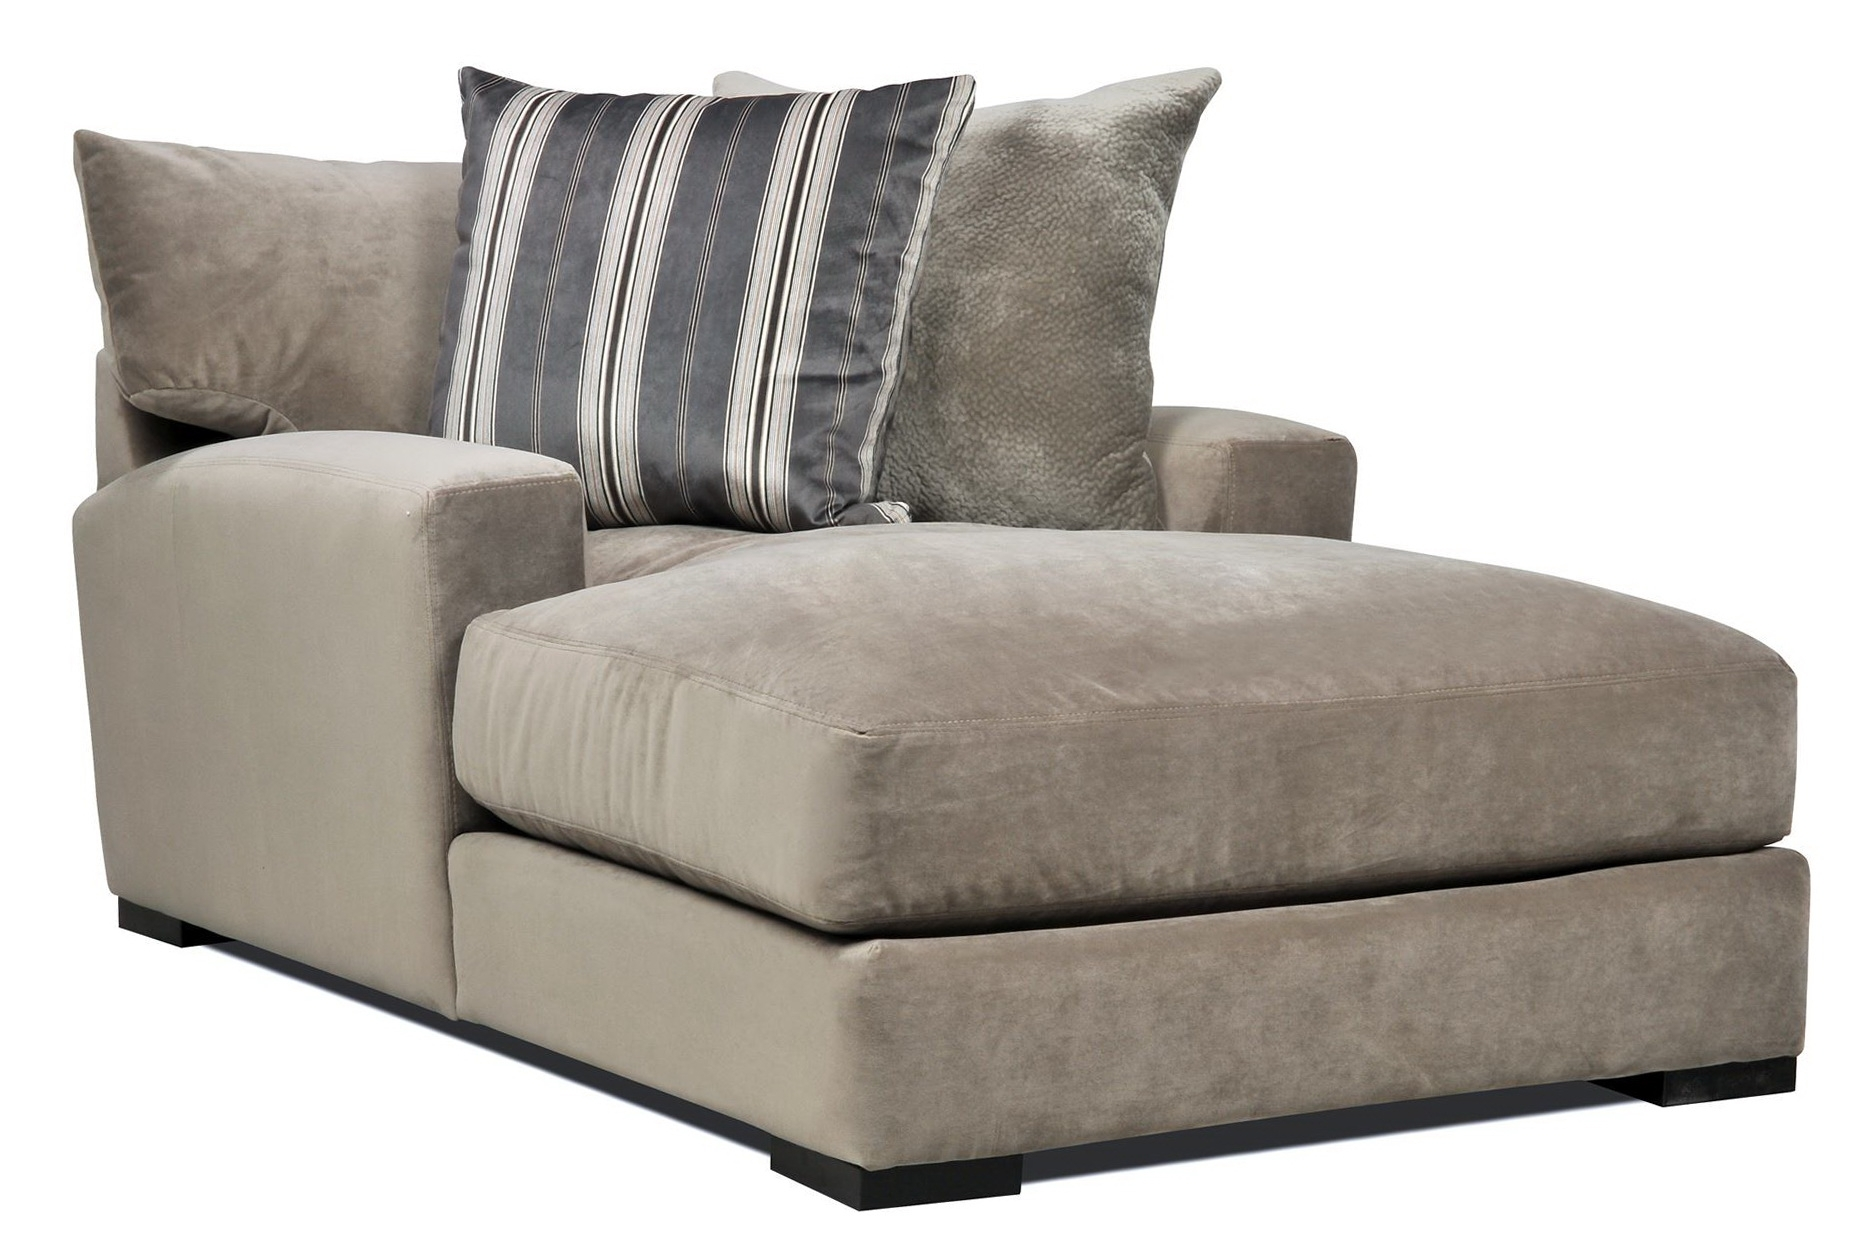 Fabric Chaise Lounge Chairs For Popular Double Wide Chaise Lounge Indoor With 2 Cushions (View 5 of 15)